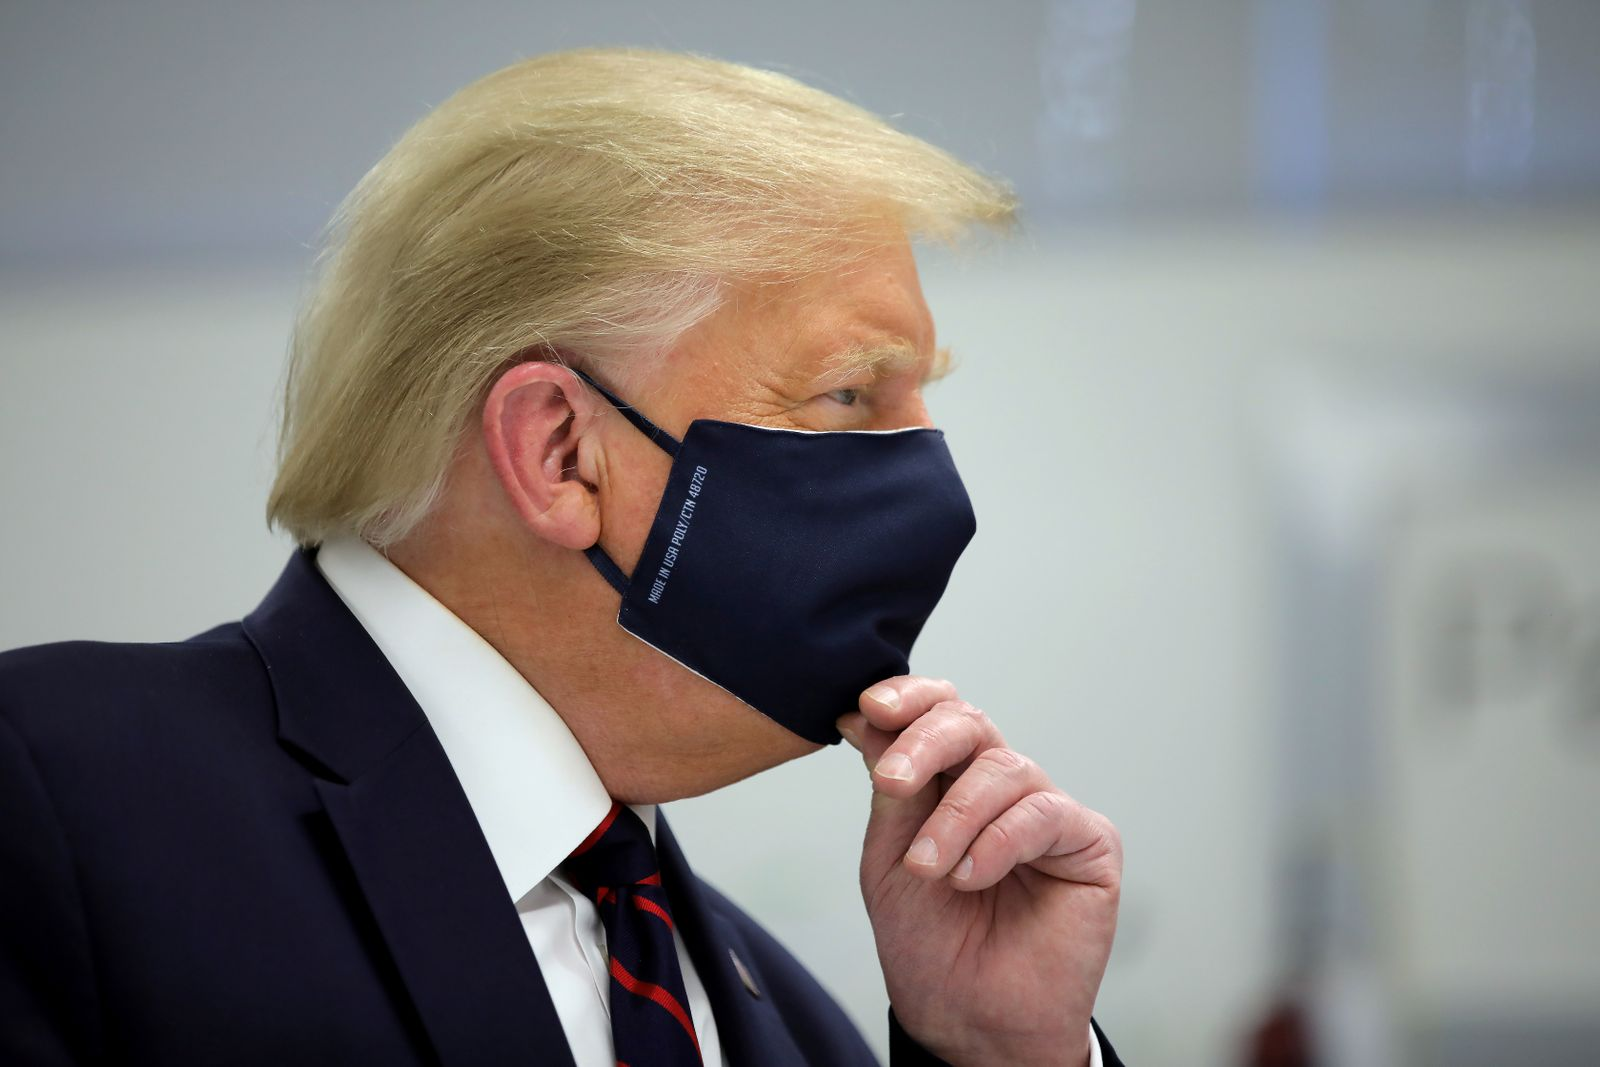 U.S. President Donald Trump wears a protective face mask during a tour of the Fujifilm Diosynth Biotechnologies' Innovation Center, in Morrisville